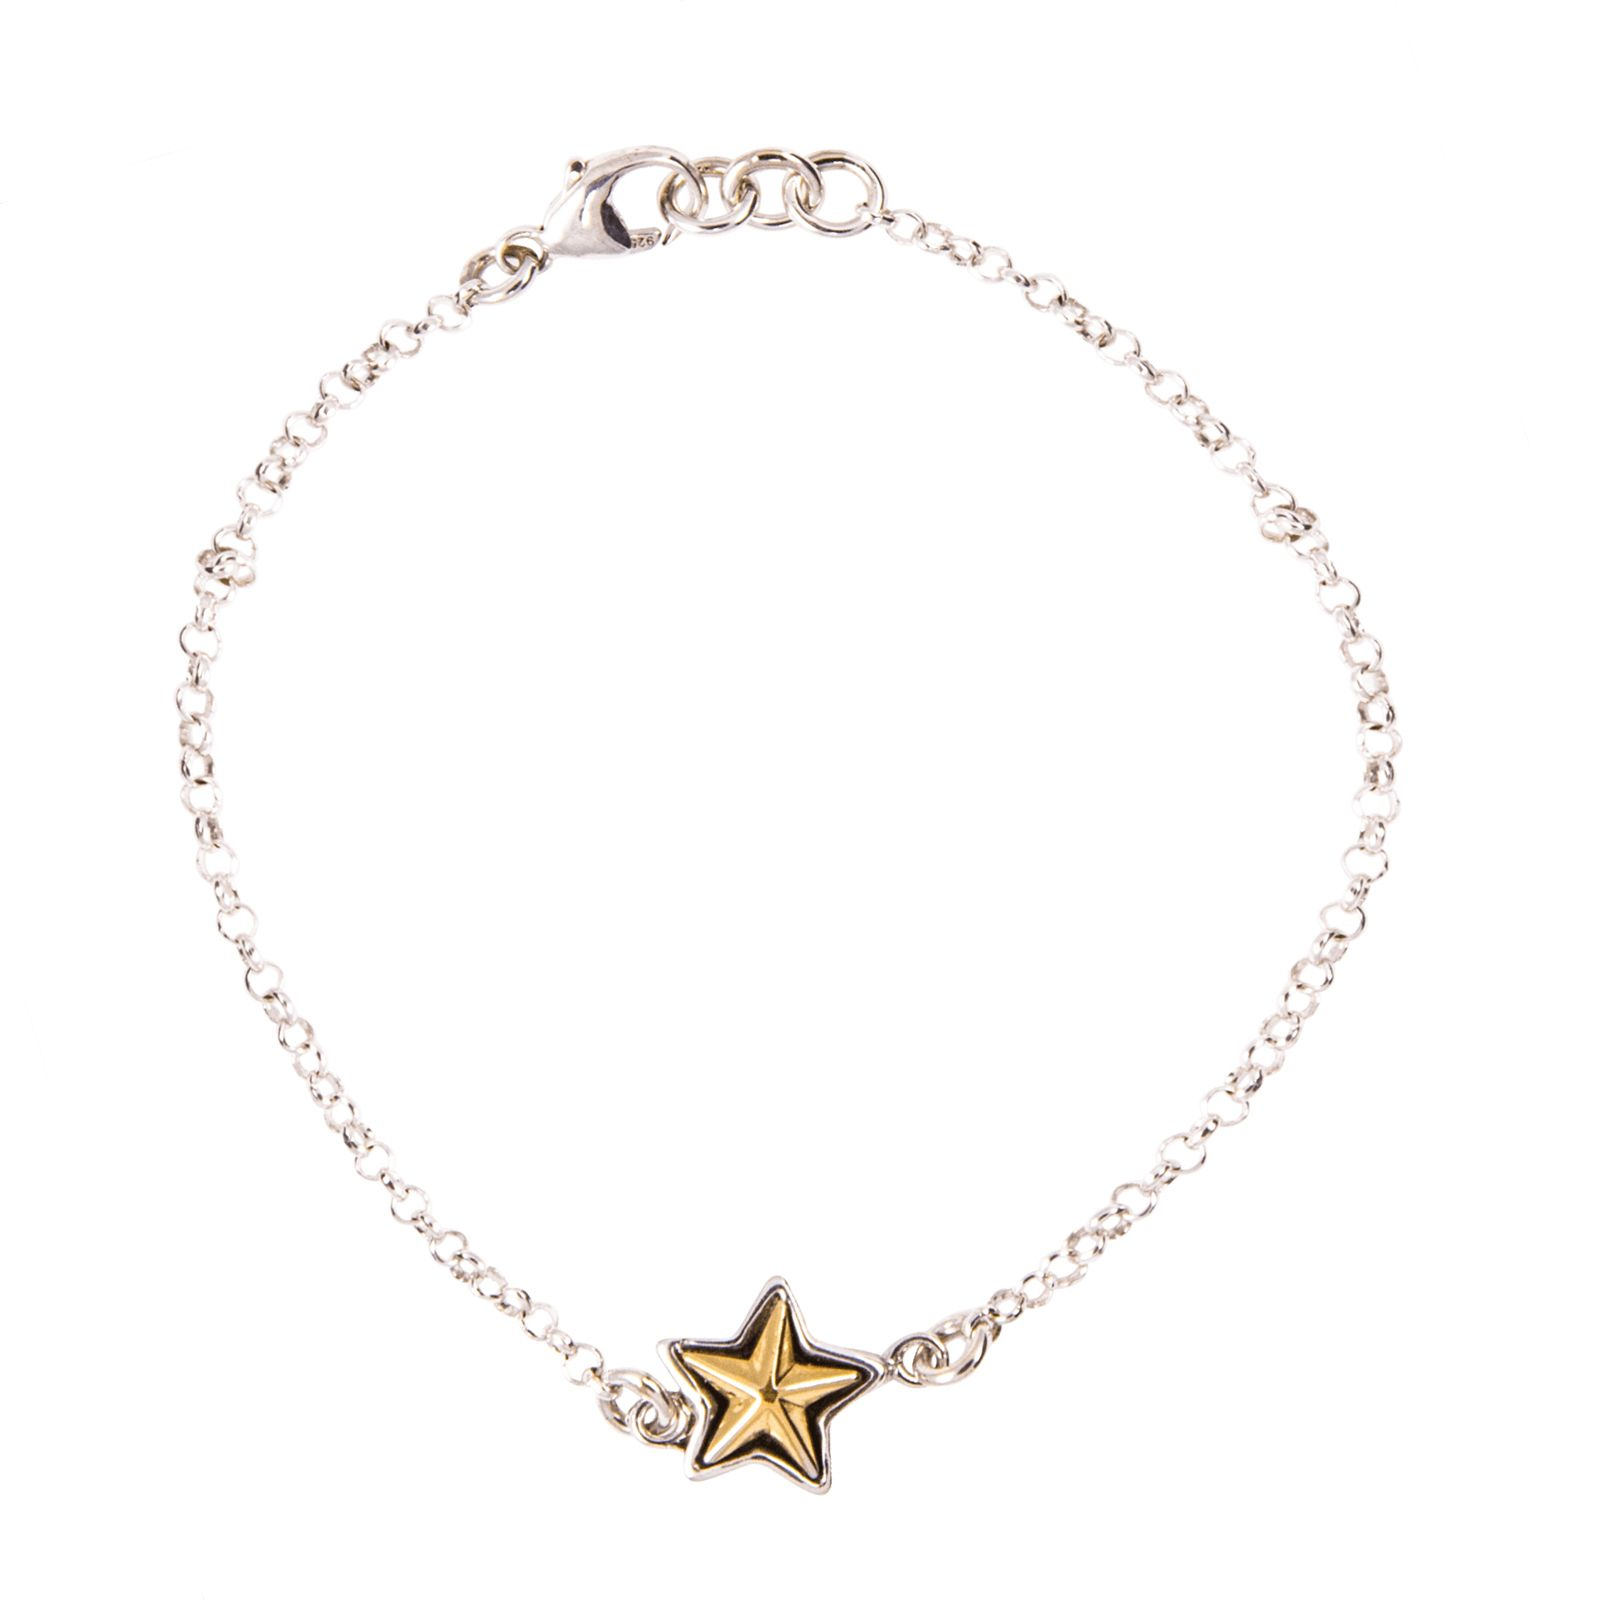 Single Sterling Silver Texas Star Bracelet